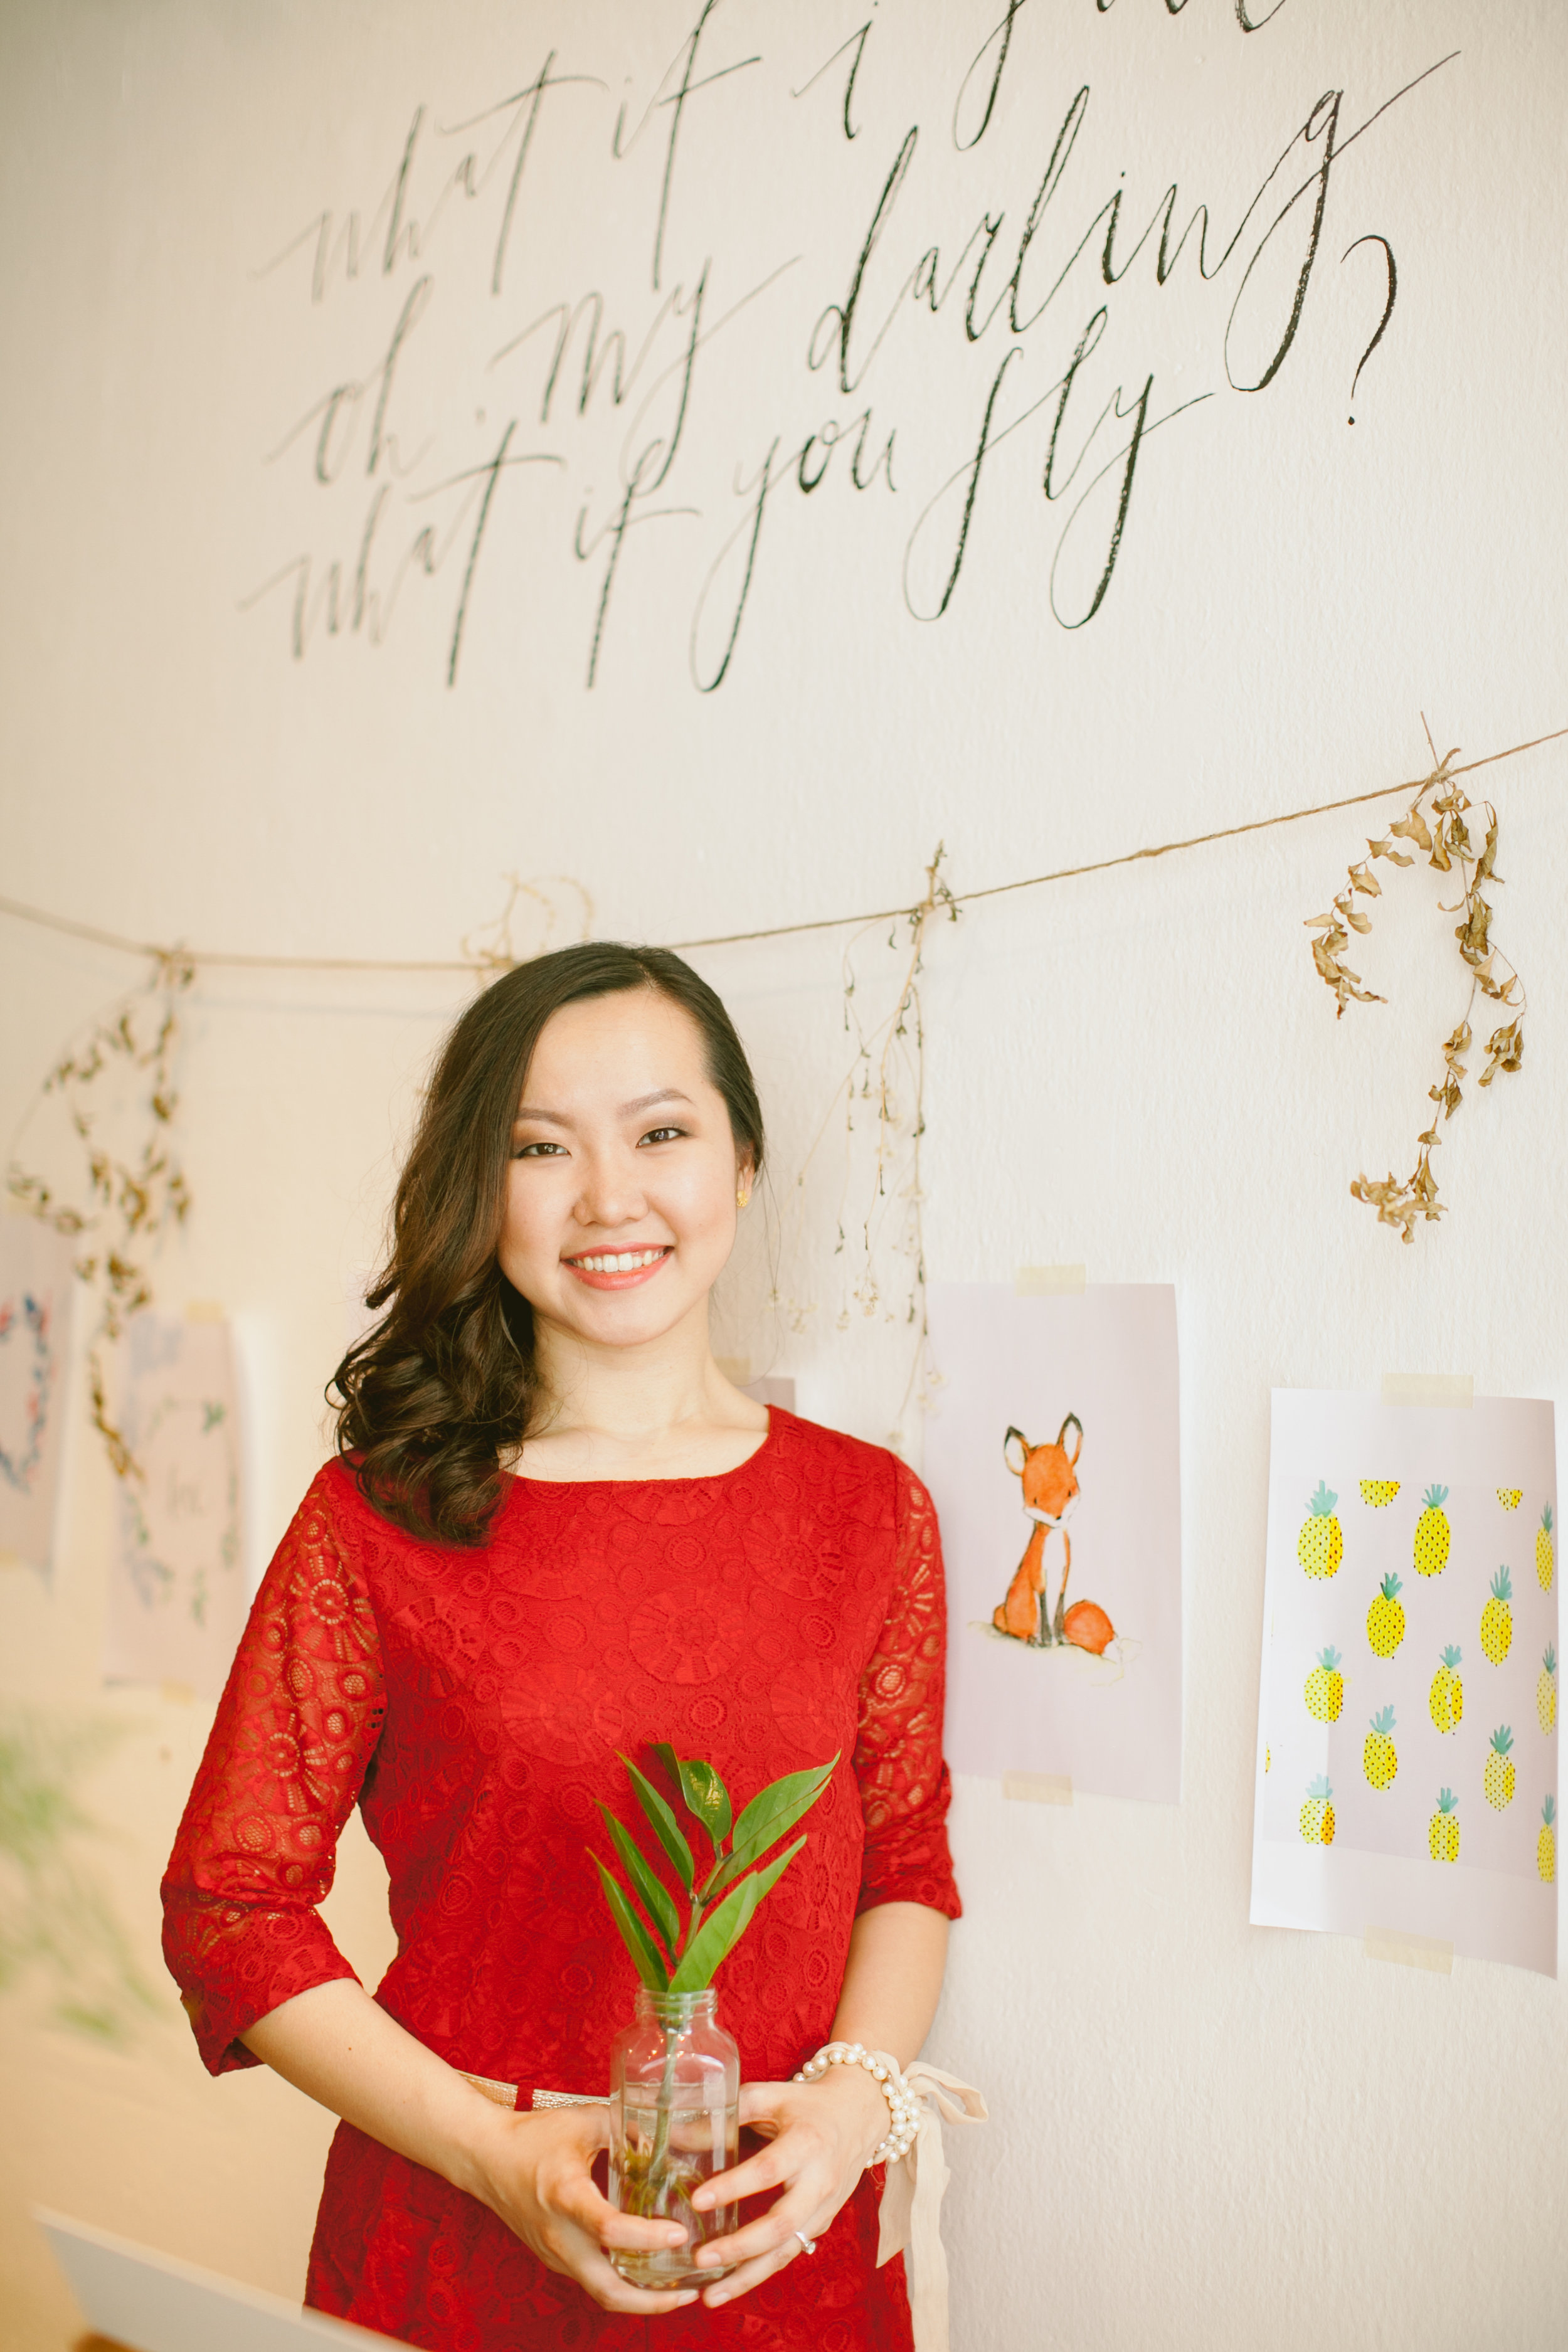 meet bebs - Hi, I am Bebs! I guide peoplewho want to break free from clutter and transform their space from ROOMFUL to JOYFUL! Everyone deserves to live in a space that is a reflection of their true selves, and feel inspired to pursue the things that bring them joy. Once you let go of clutter and create a joyful space in your physical world, then you are able to make space for things that matter most to you    Get to know more through the link below.